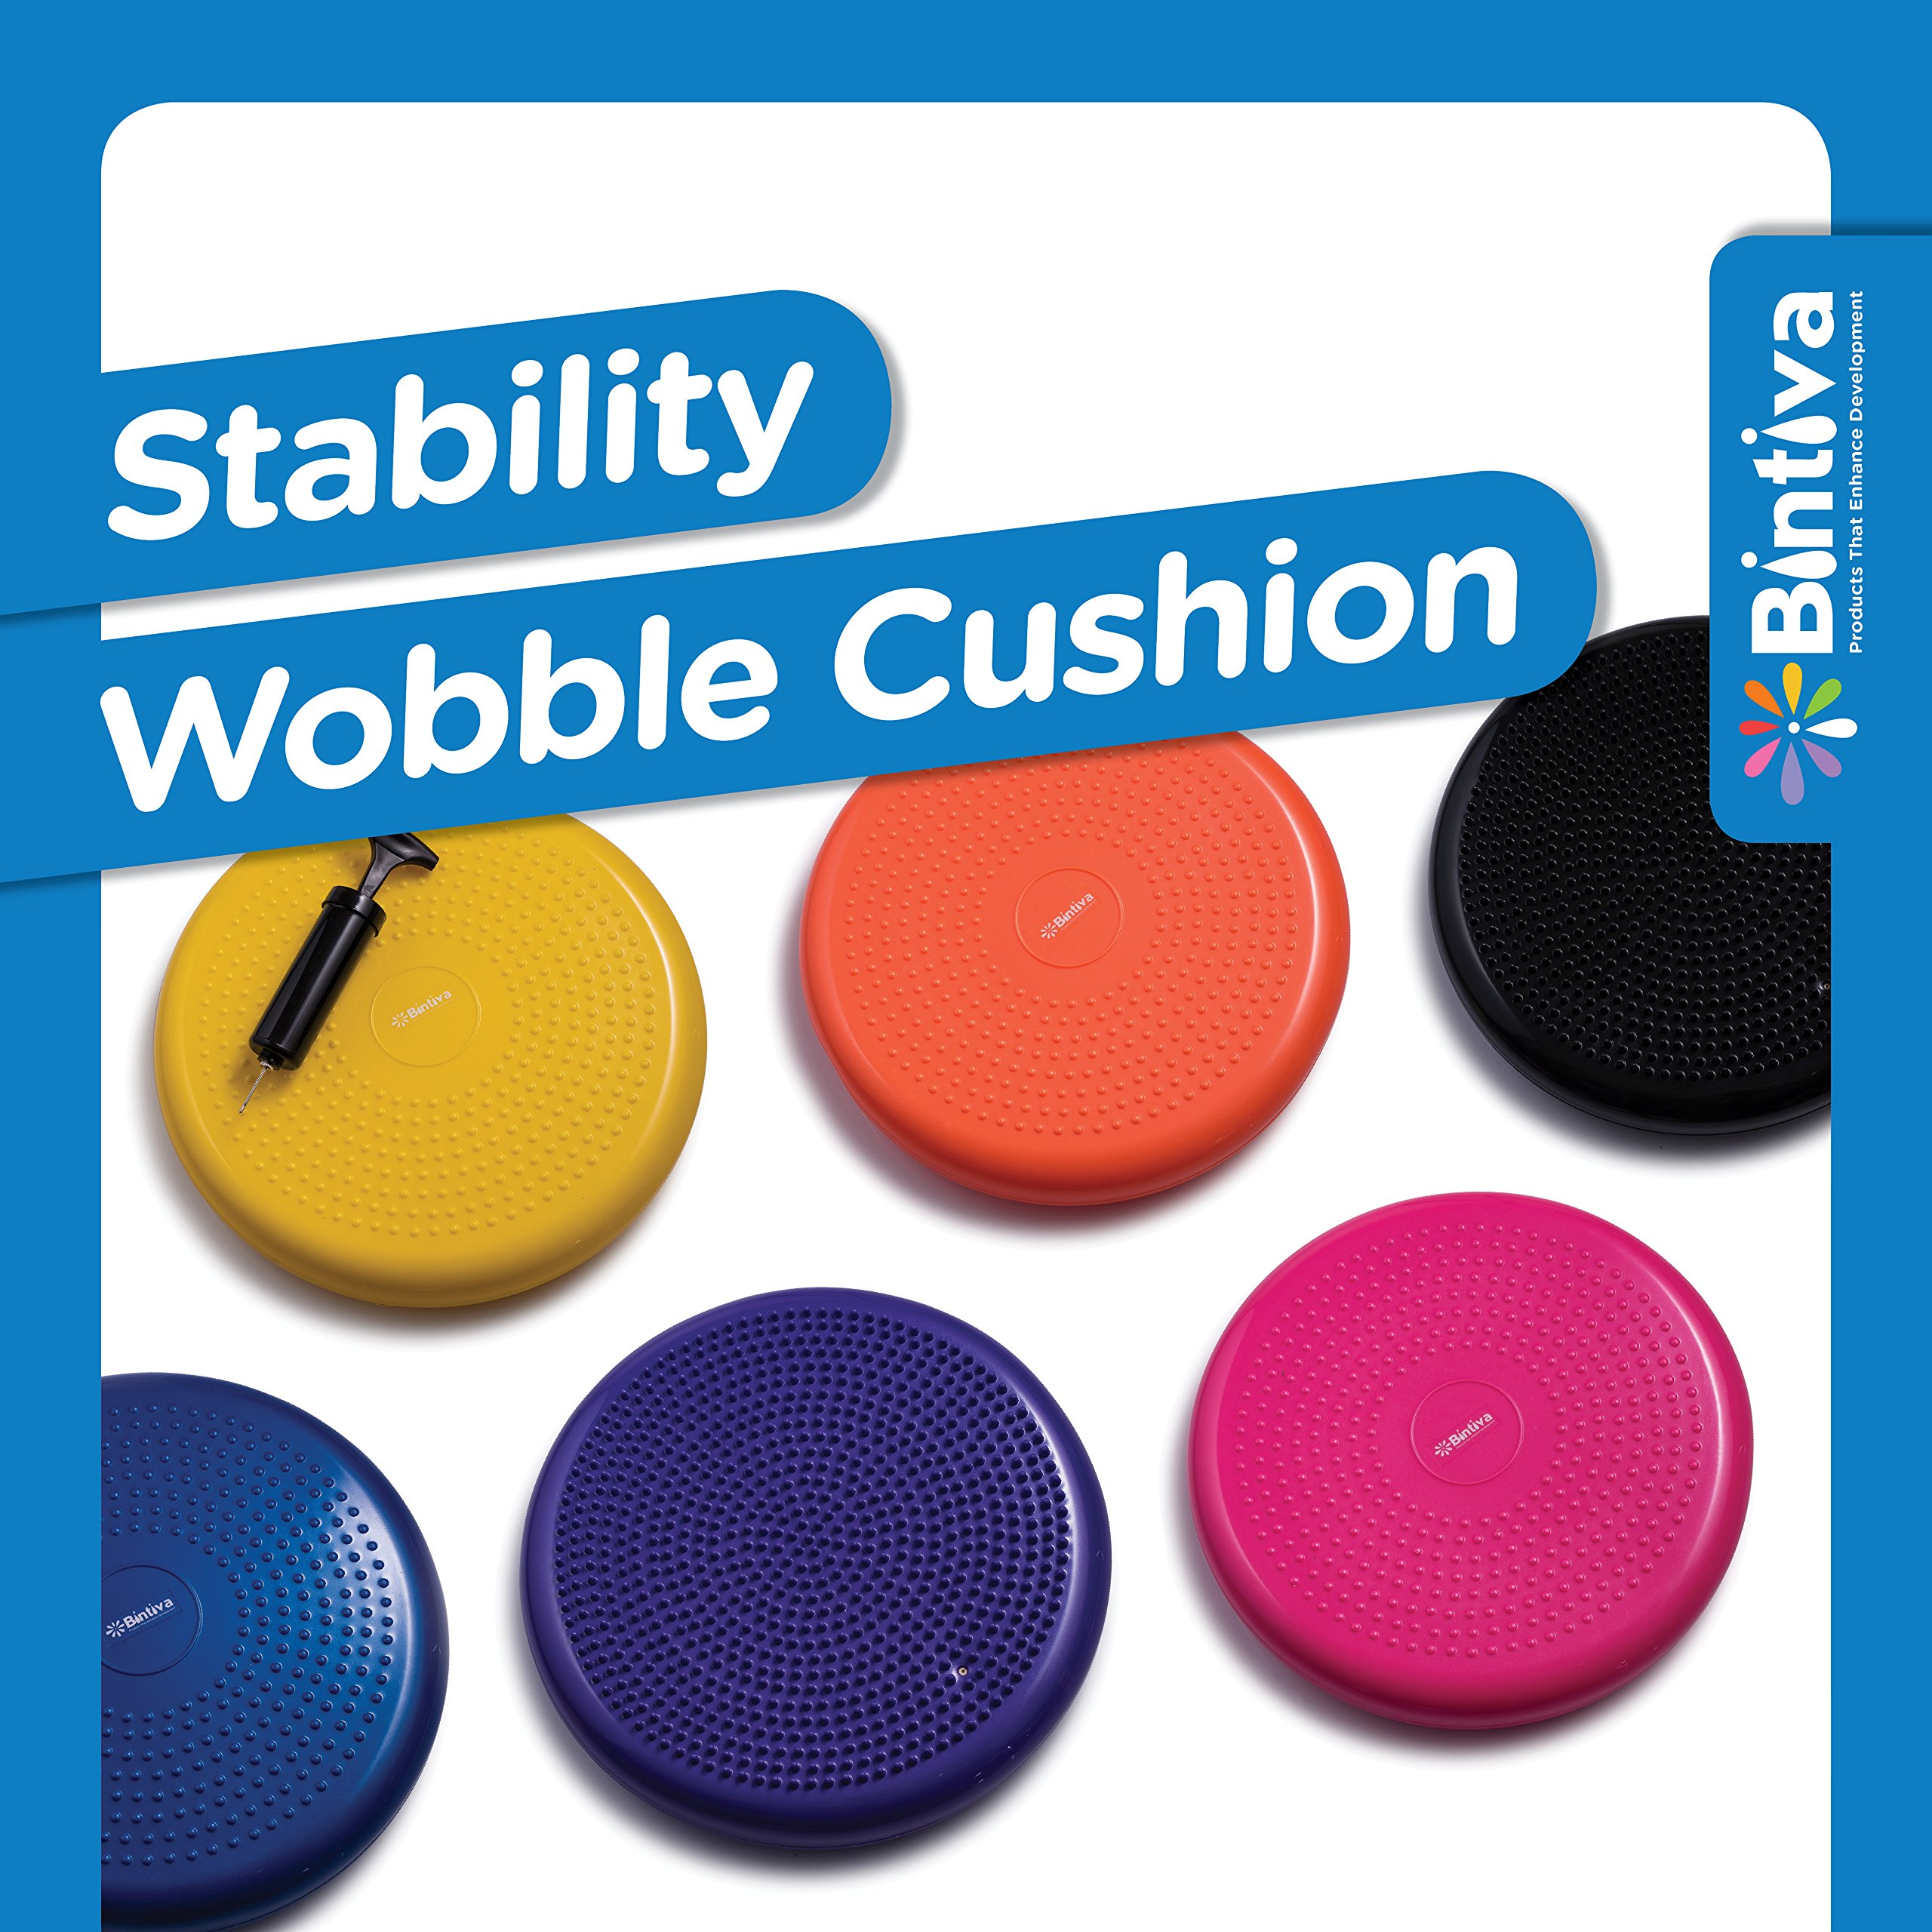 Inflated Stability Wobble Cushion, Including Free Pump / Exercise Fitness Core Balance Disc,Blue,size: 13 inches / 33 cm diameter by bintiva (Image #9)